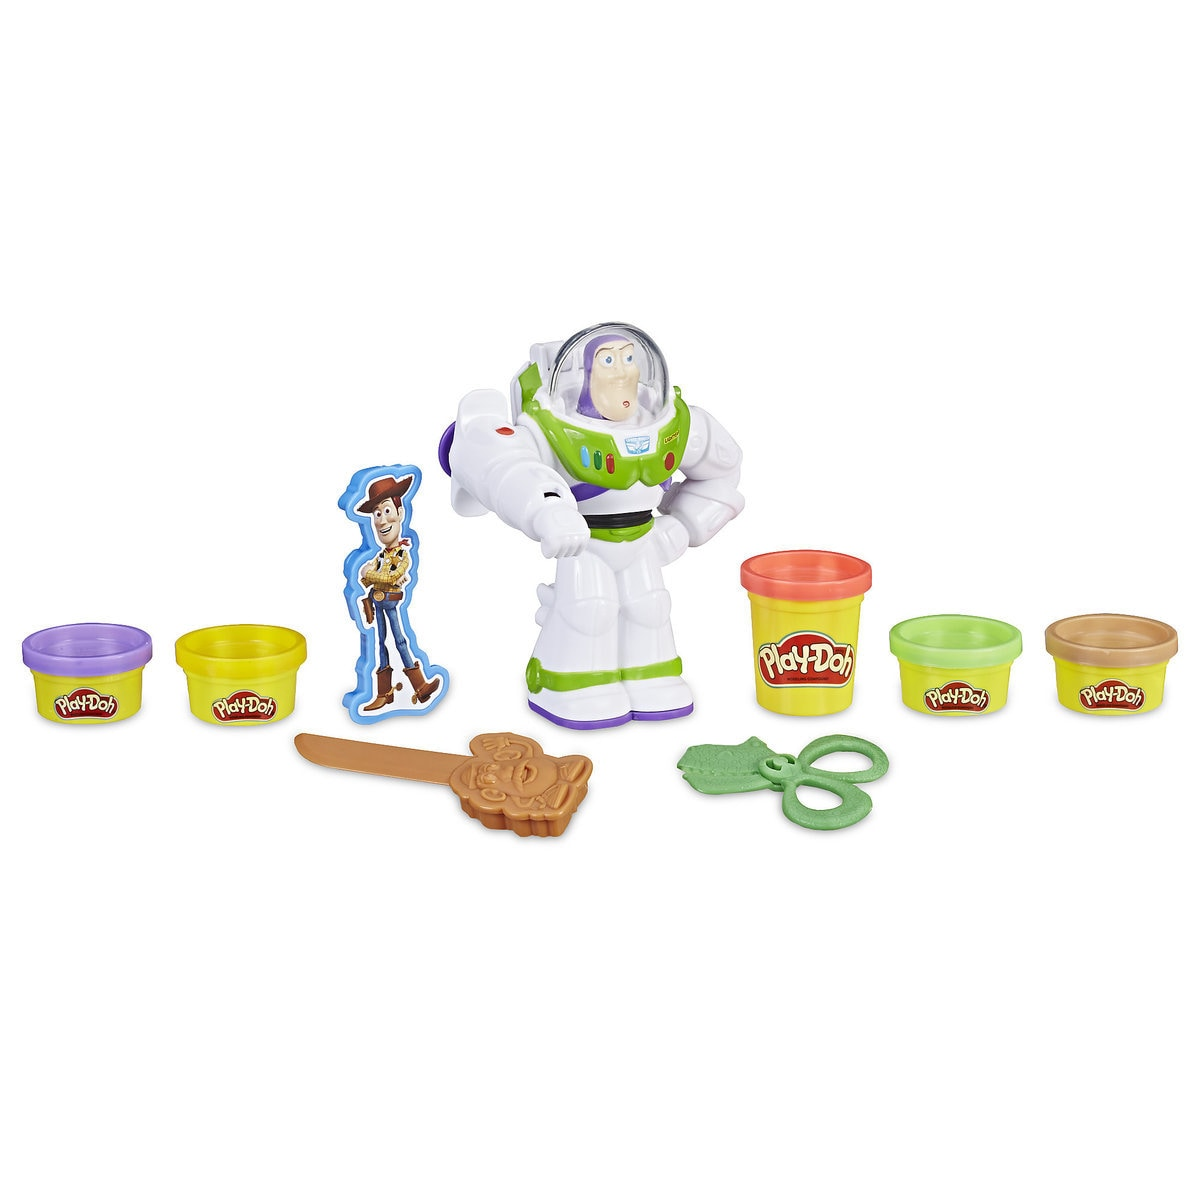 Product Image of Buzz Lightyear Play-Doh Set # 1